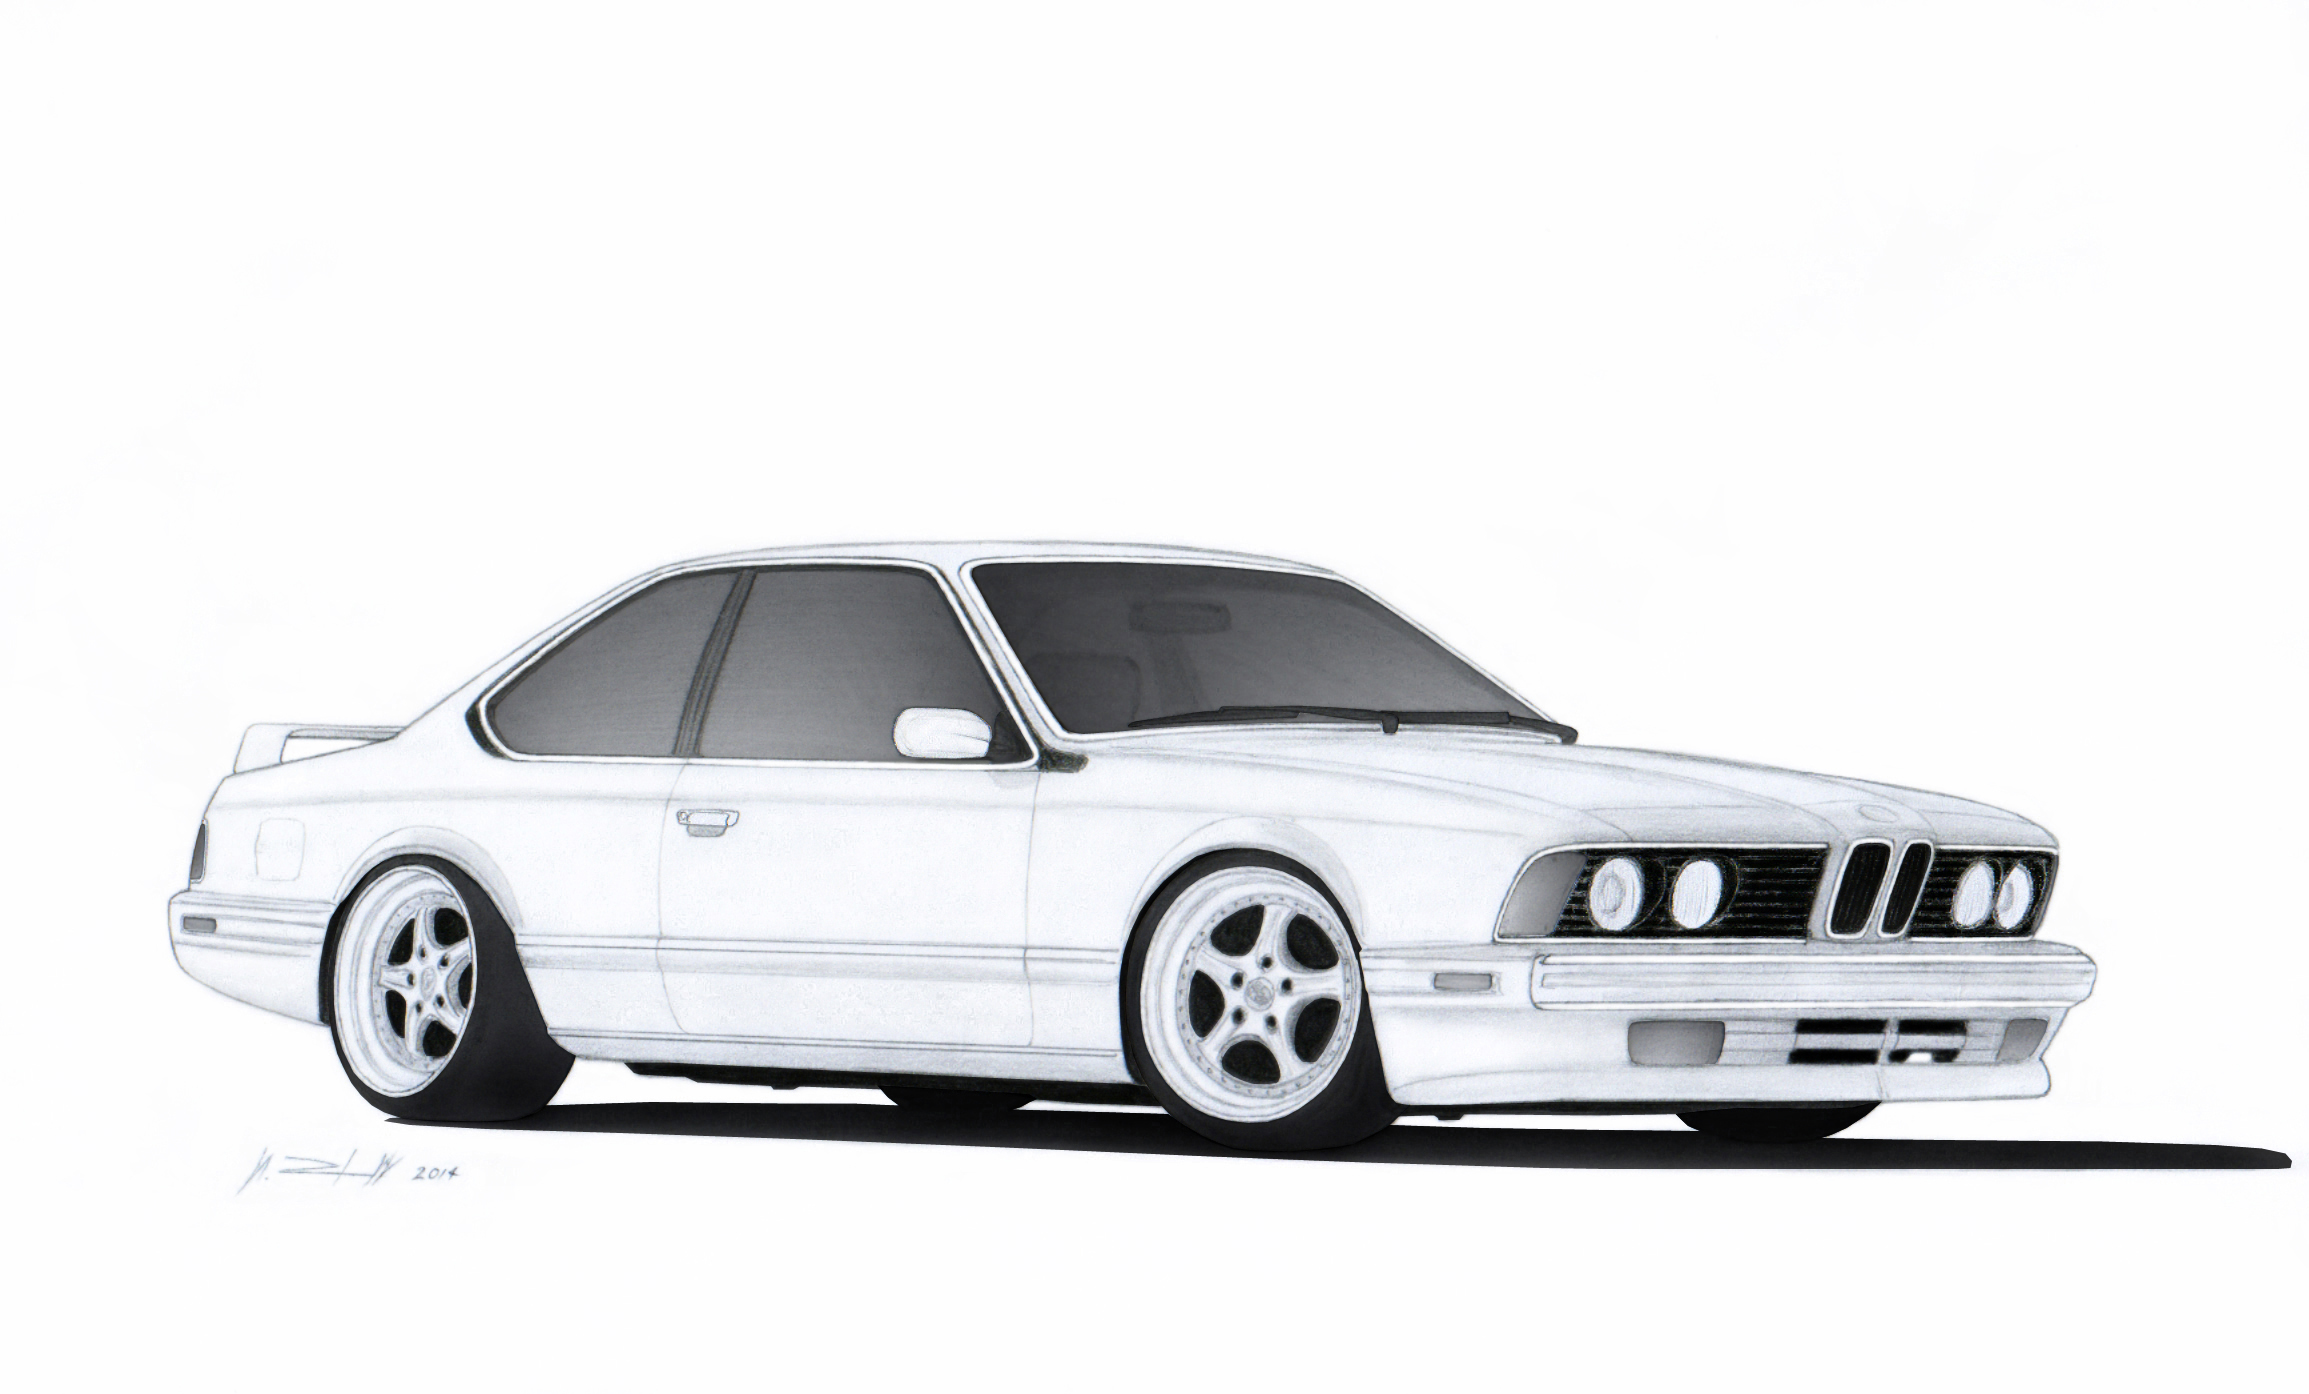 BMW 635 CSi E24 Drawing by Vertualissimo on DeviantArt